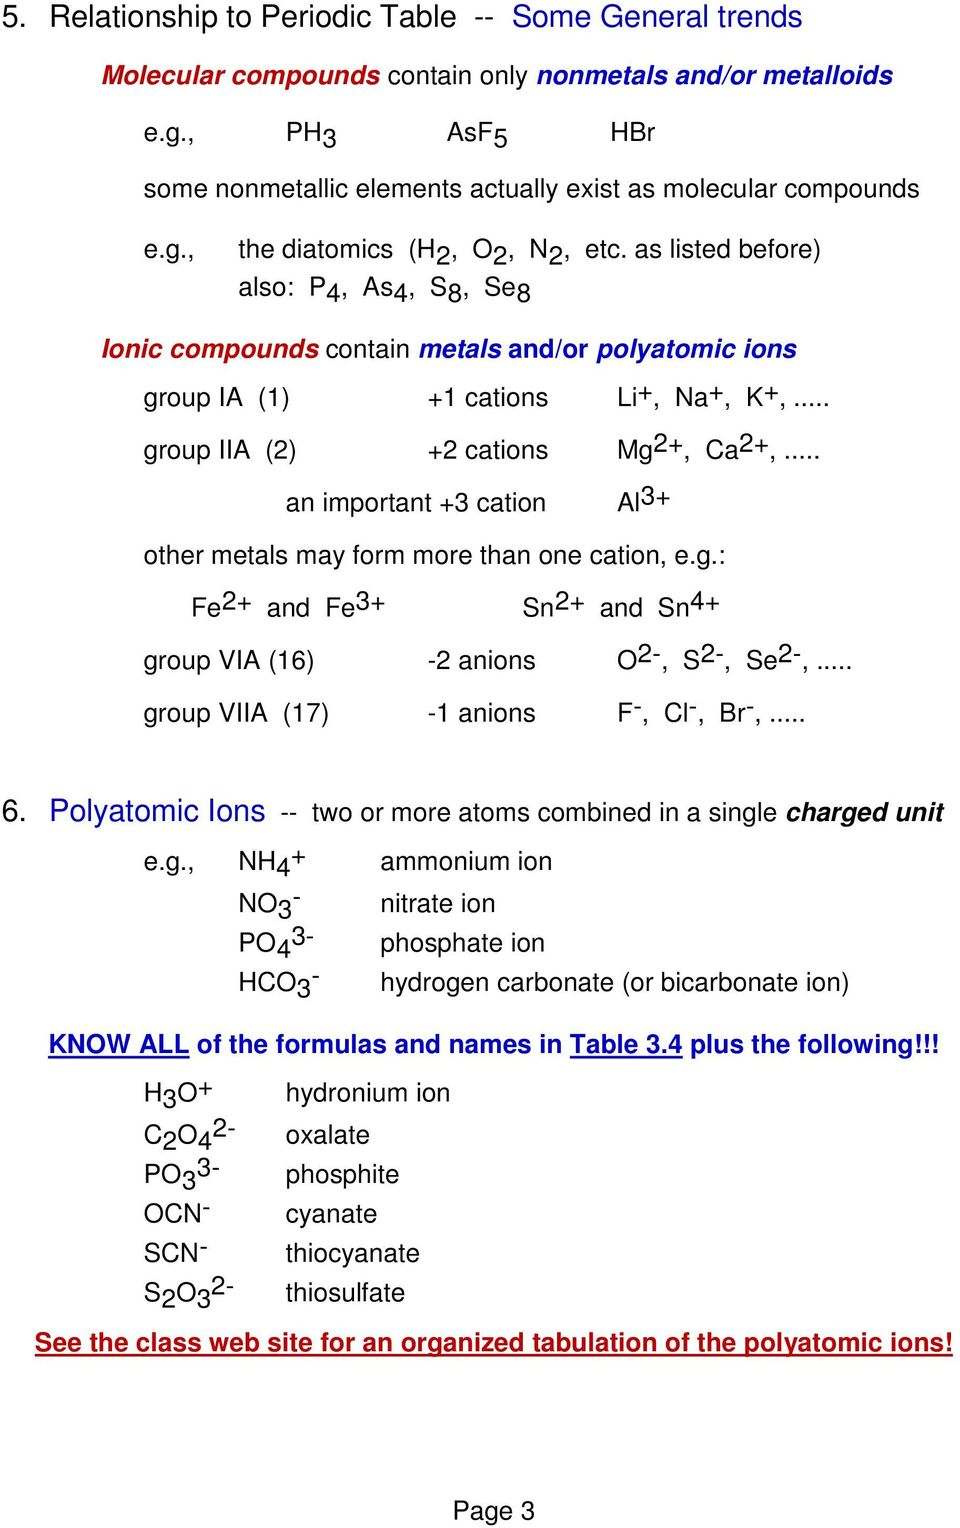 Molecules, Compounds, and Chemical Equations (Chapter 3) - PDF